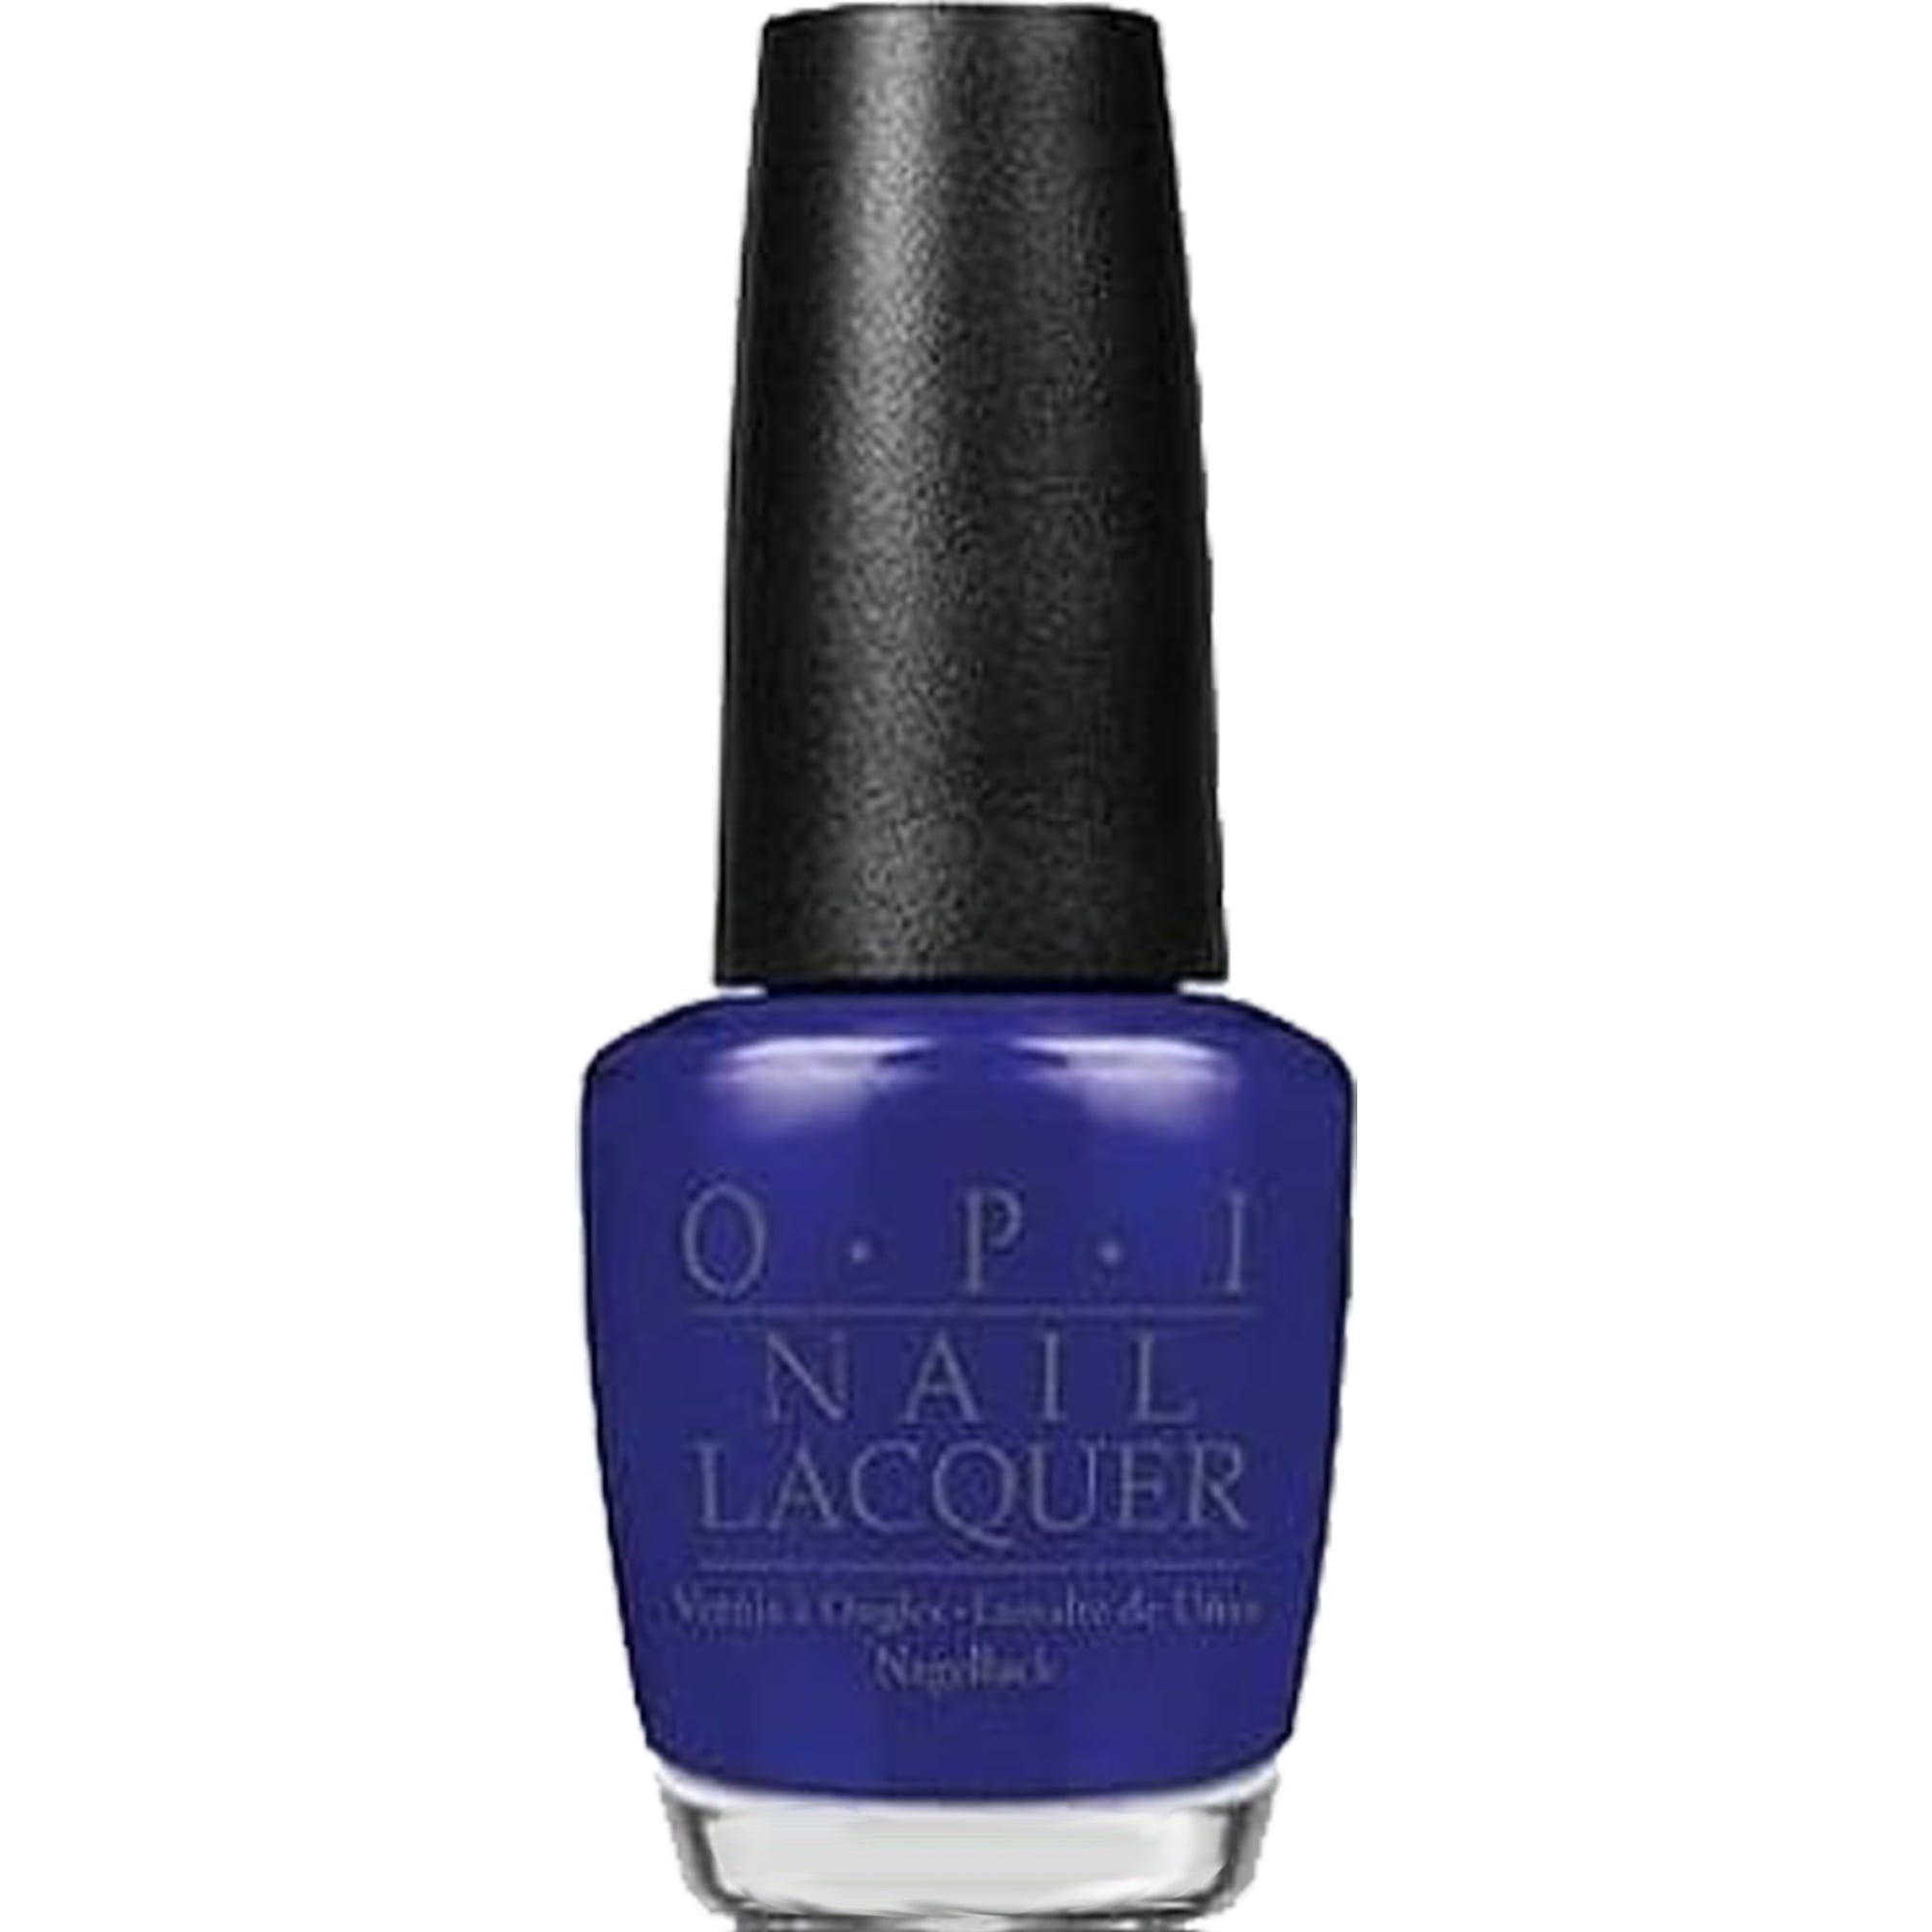 My Car Has Navy-gation-OPI-UK-Wholesaler-Supplier-queenofnailscouk